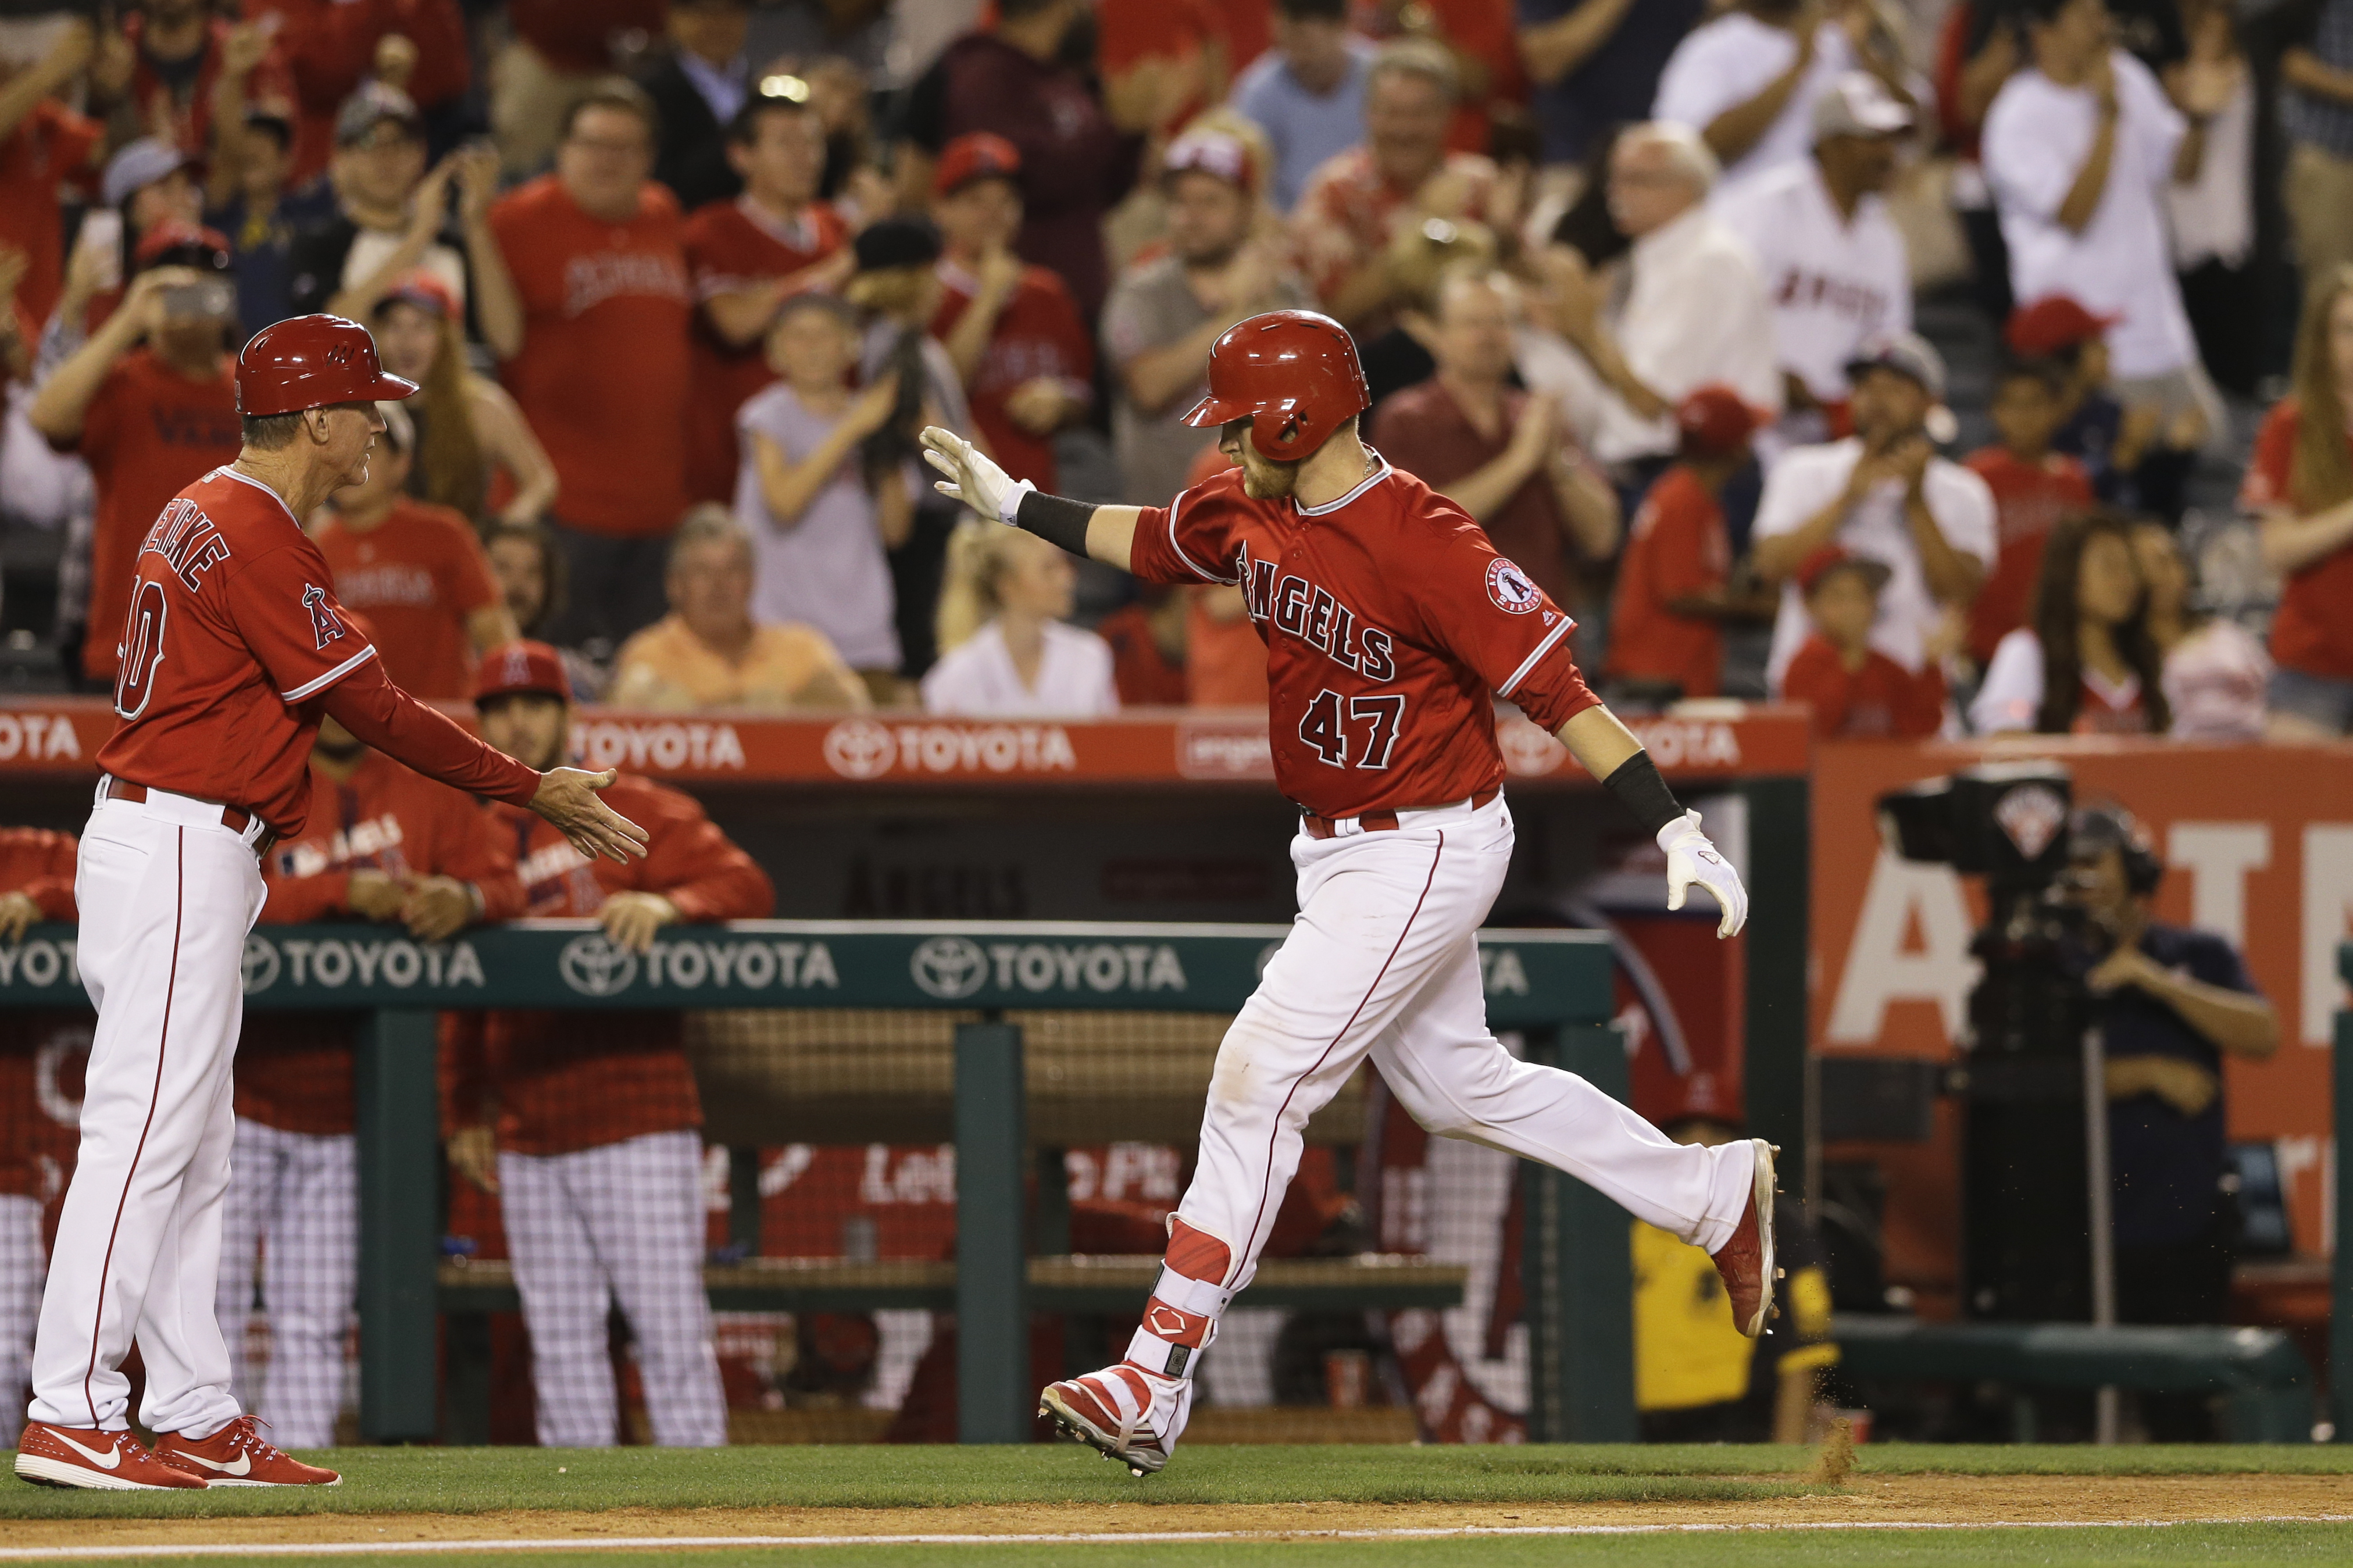 Los Angeles Angels' Jett Bandy (47) is greeted by third base coach Ron Roenicke after hitting a two-run home run during the ninth inning of a baseball game Thursday, June 23, 2016, in Anaheim, Calif. (AP Photo/Gregory Bull)